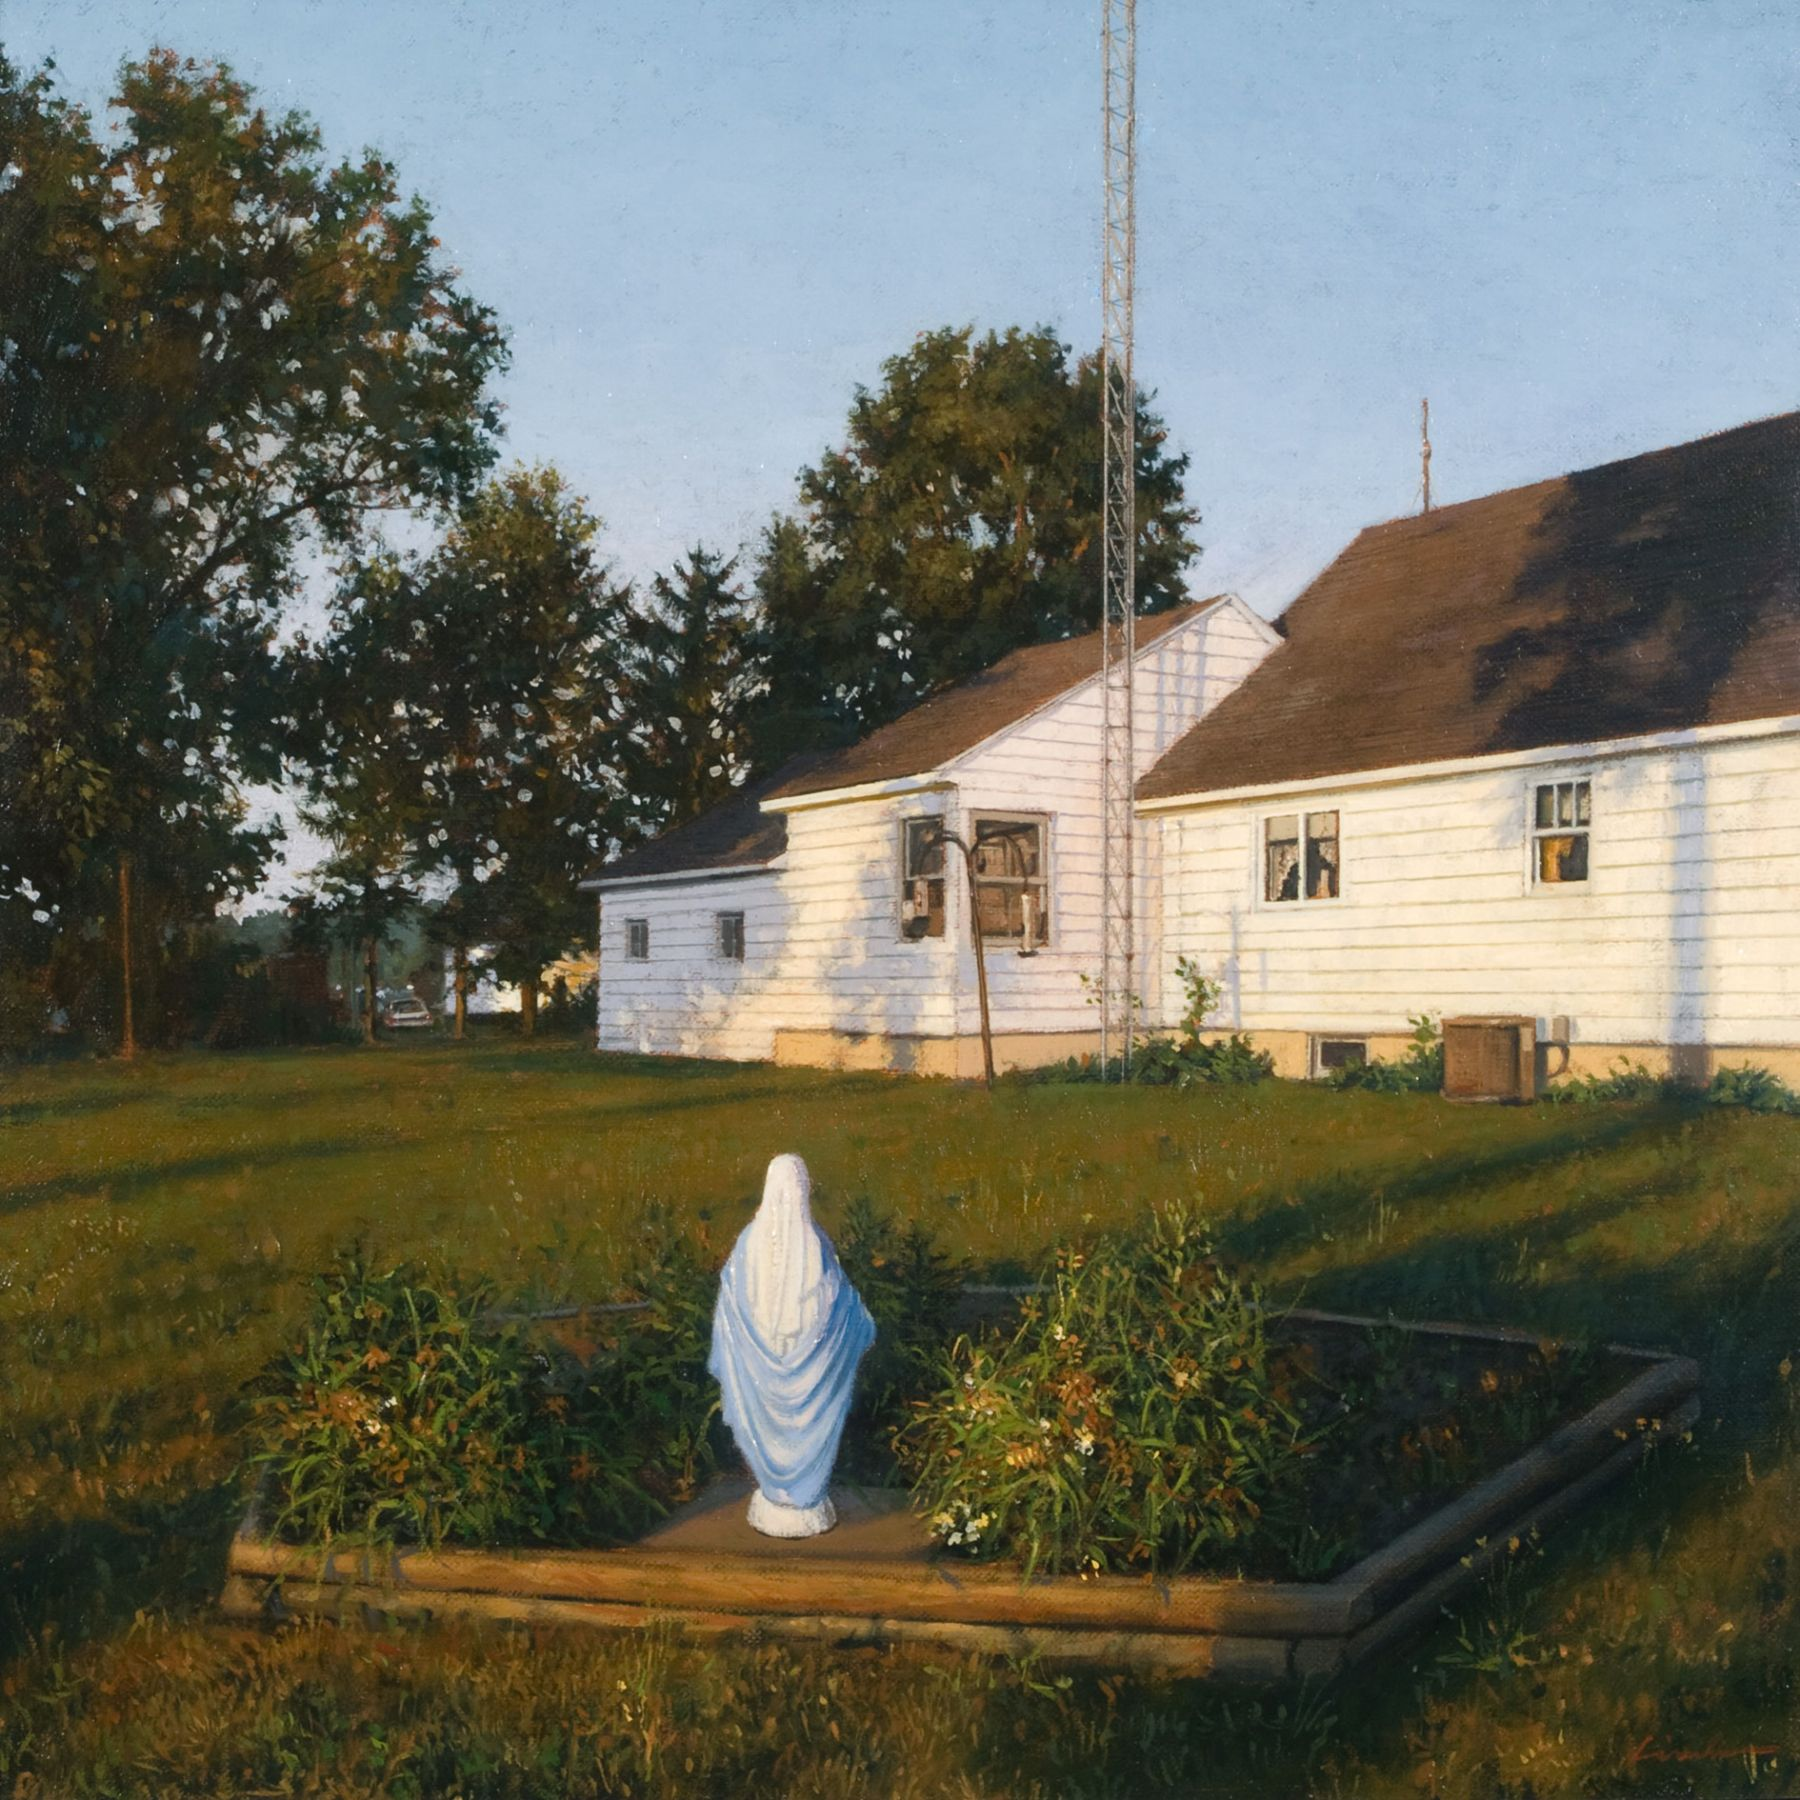 Linden Frederick, Ham Radio (SOLD), 2007, oil on panel, 12 1/4 x 12 1/4 inches